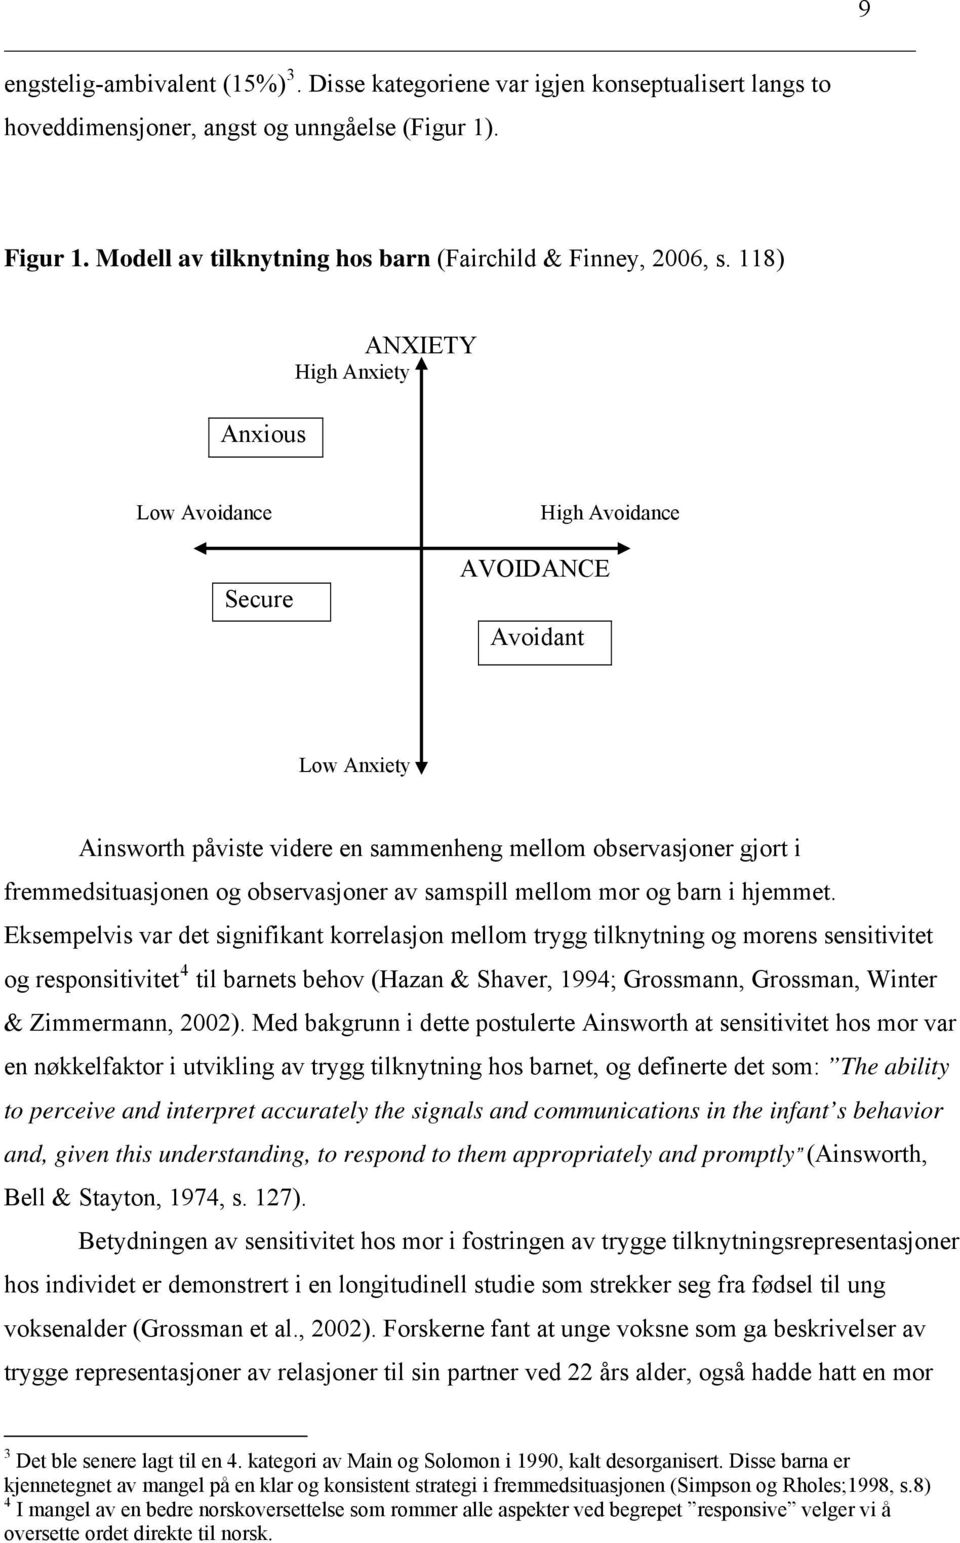 118) Anxious ANXIETY High Anxiety Low Avoidance Secure AVOIDANCE Avoidant High Avoidance Low Anxiety Ainsworth påviste videre en sammenheng mellom observasjoner gjort i fremmedsituasjonen og